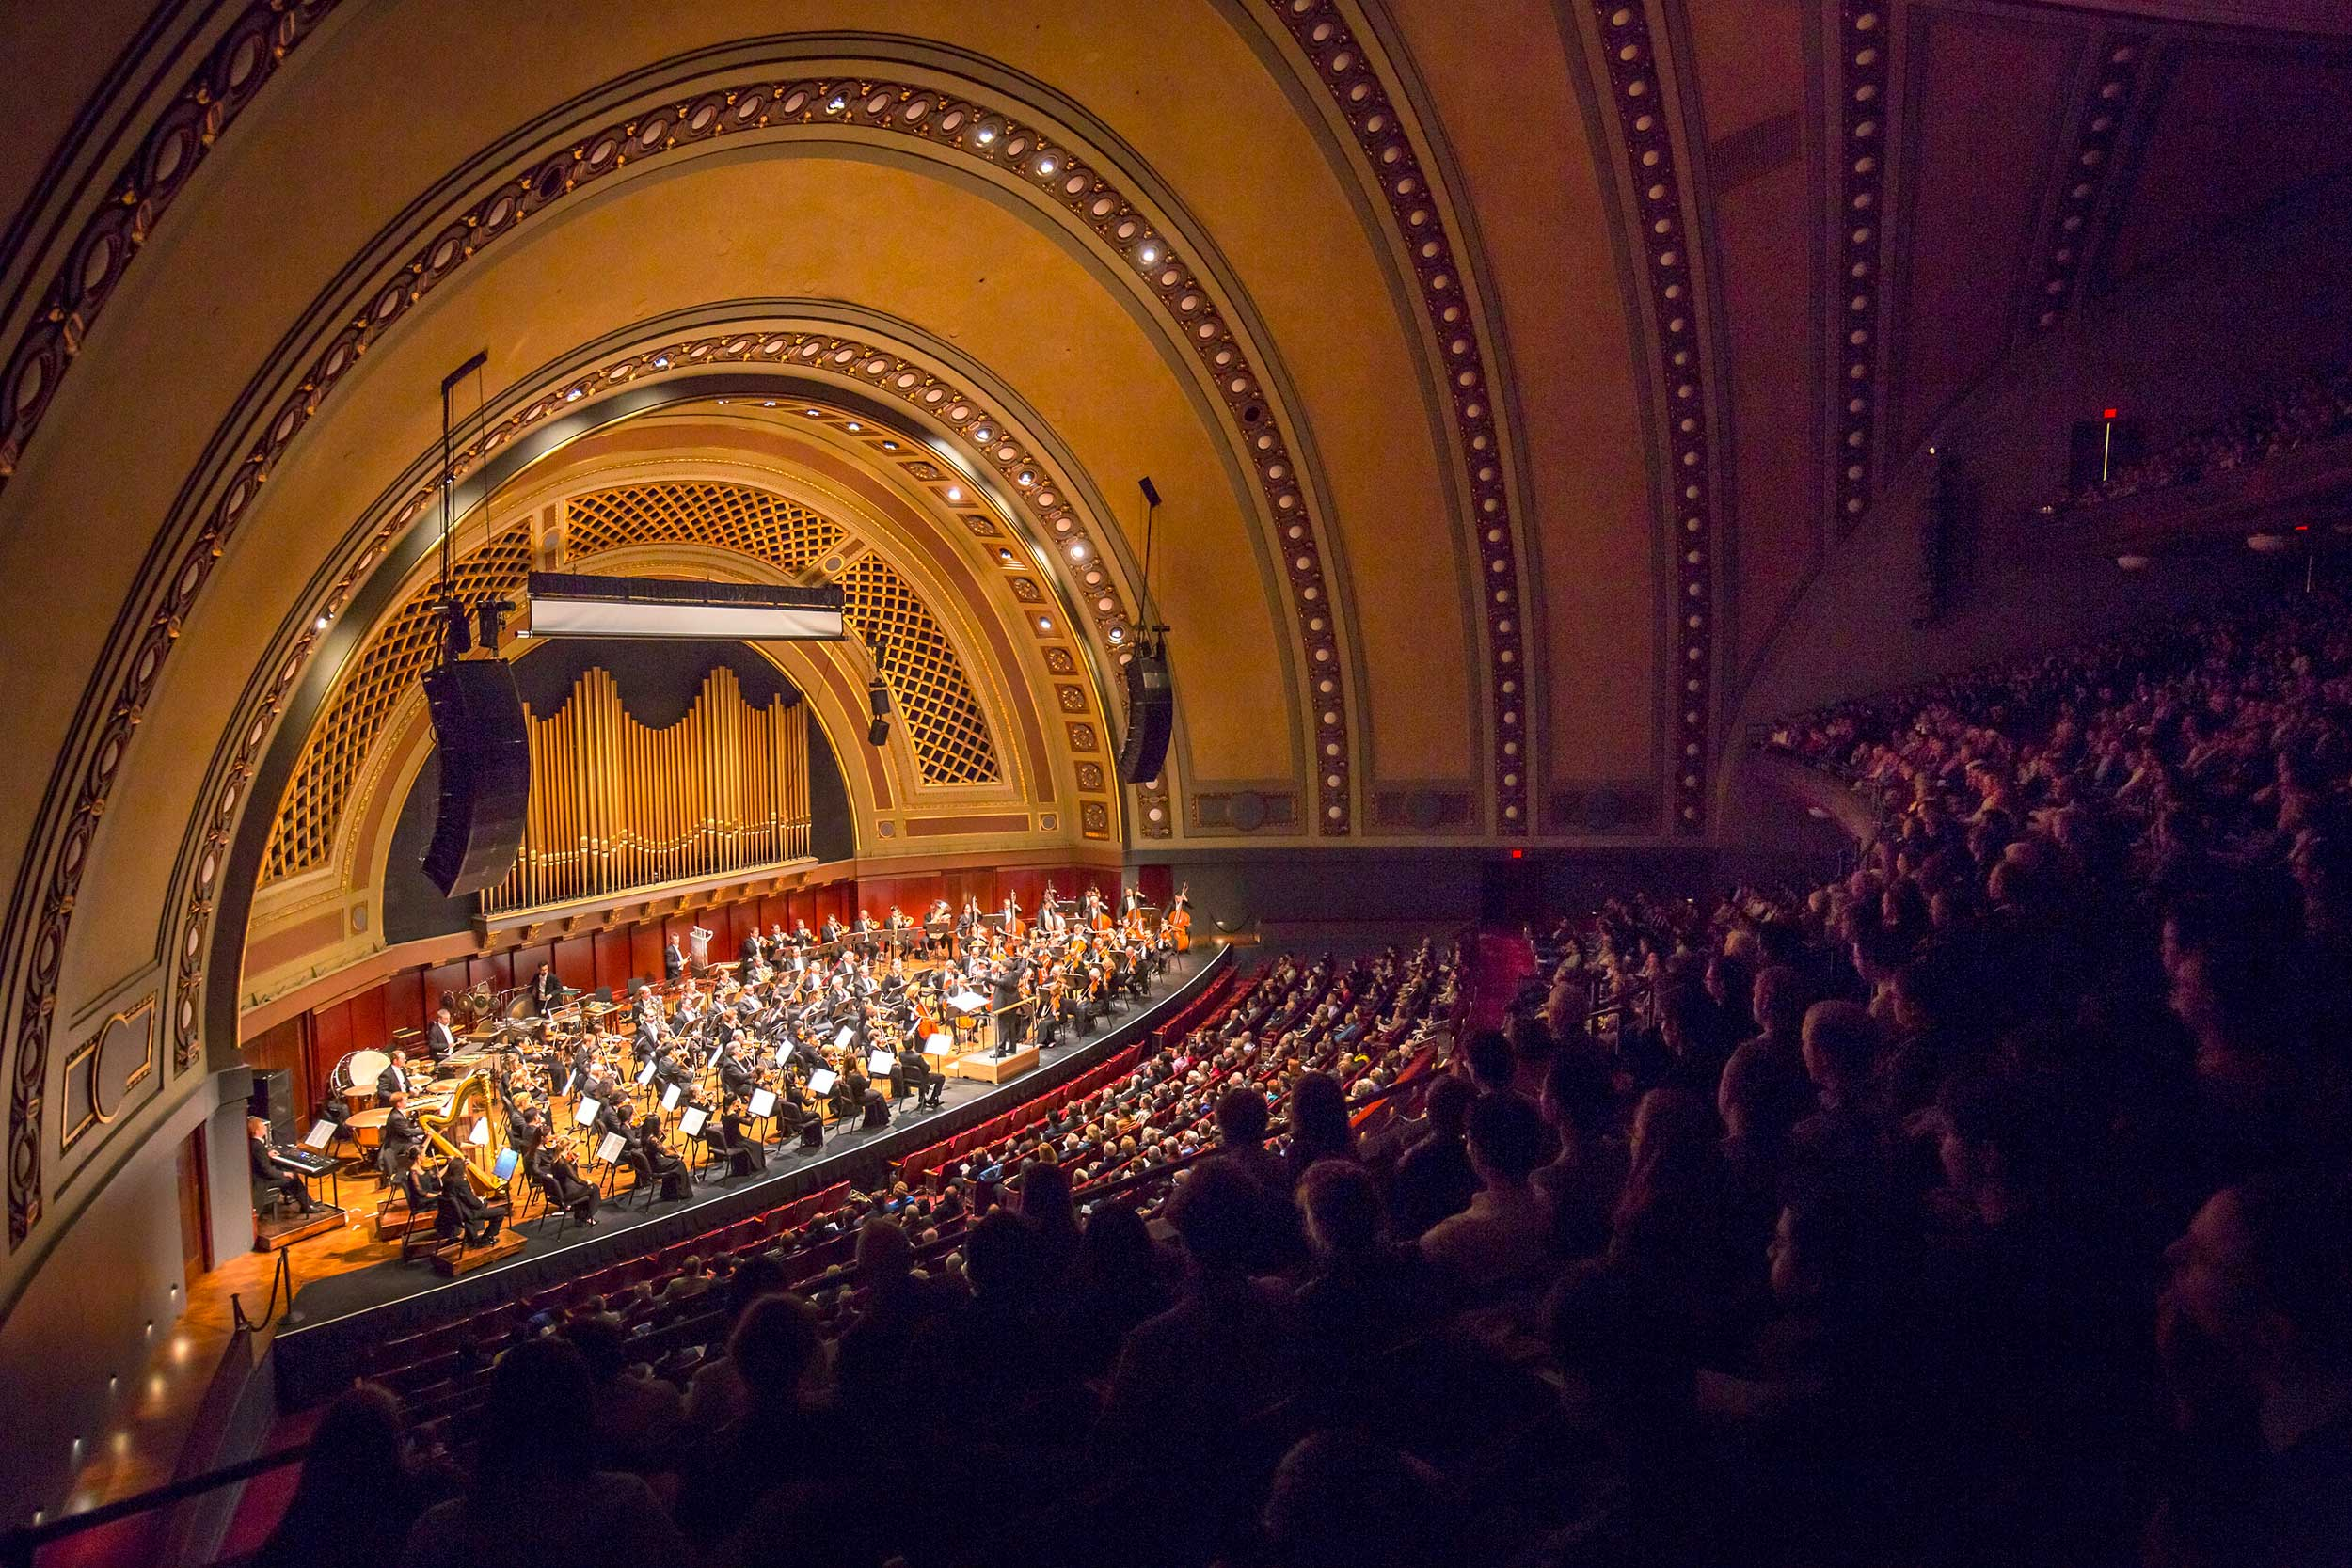 The New York Philharmonic performed at the University of Michigan's  Hill  Auditorium in  November 2017 for the first of a five - year - long  orchestral residency  with the University Musical Society (UMS). Image credit: Chris Lee